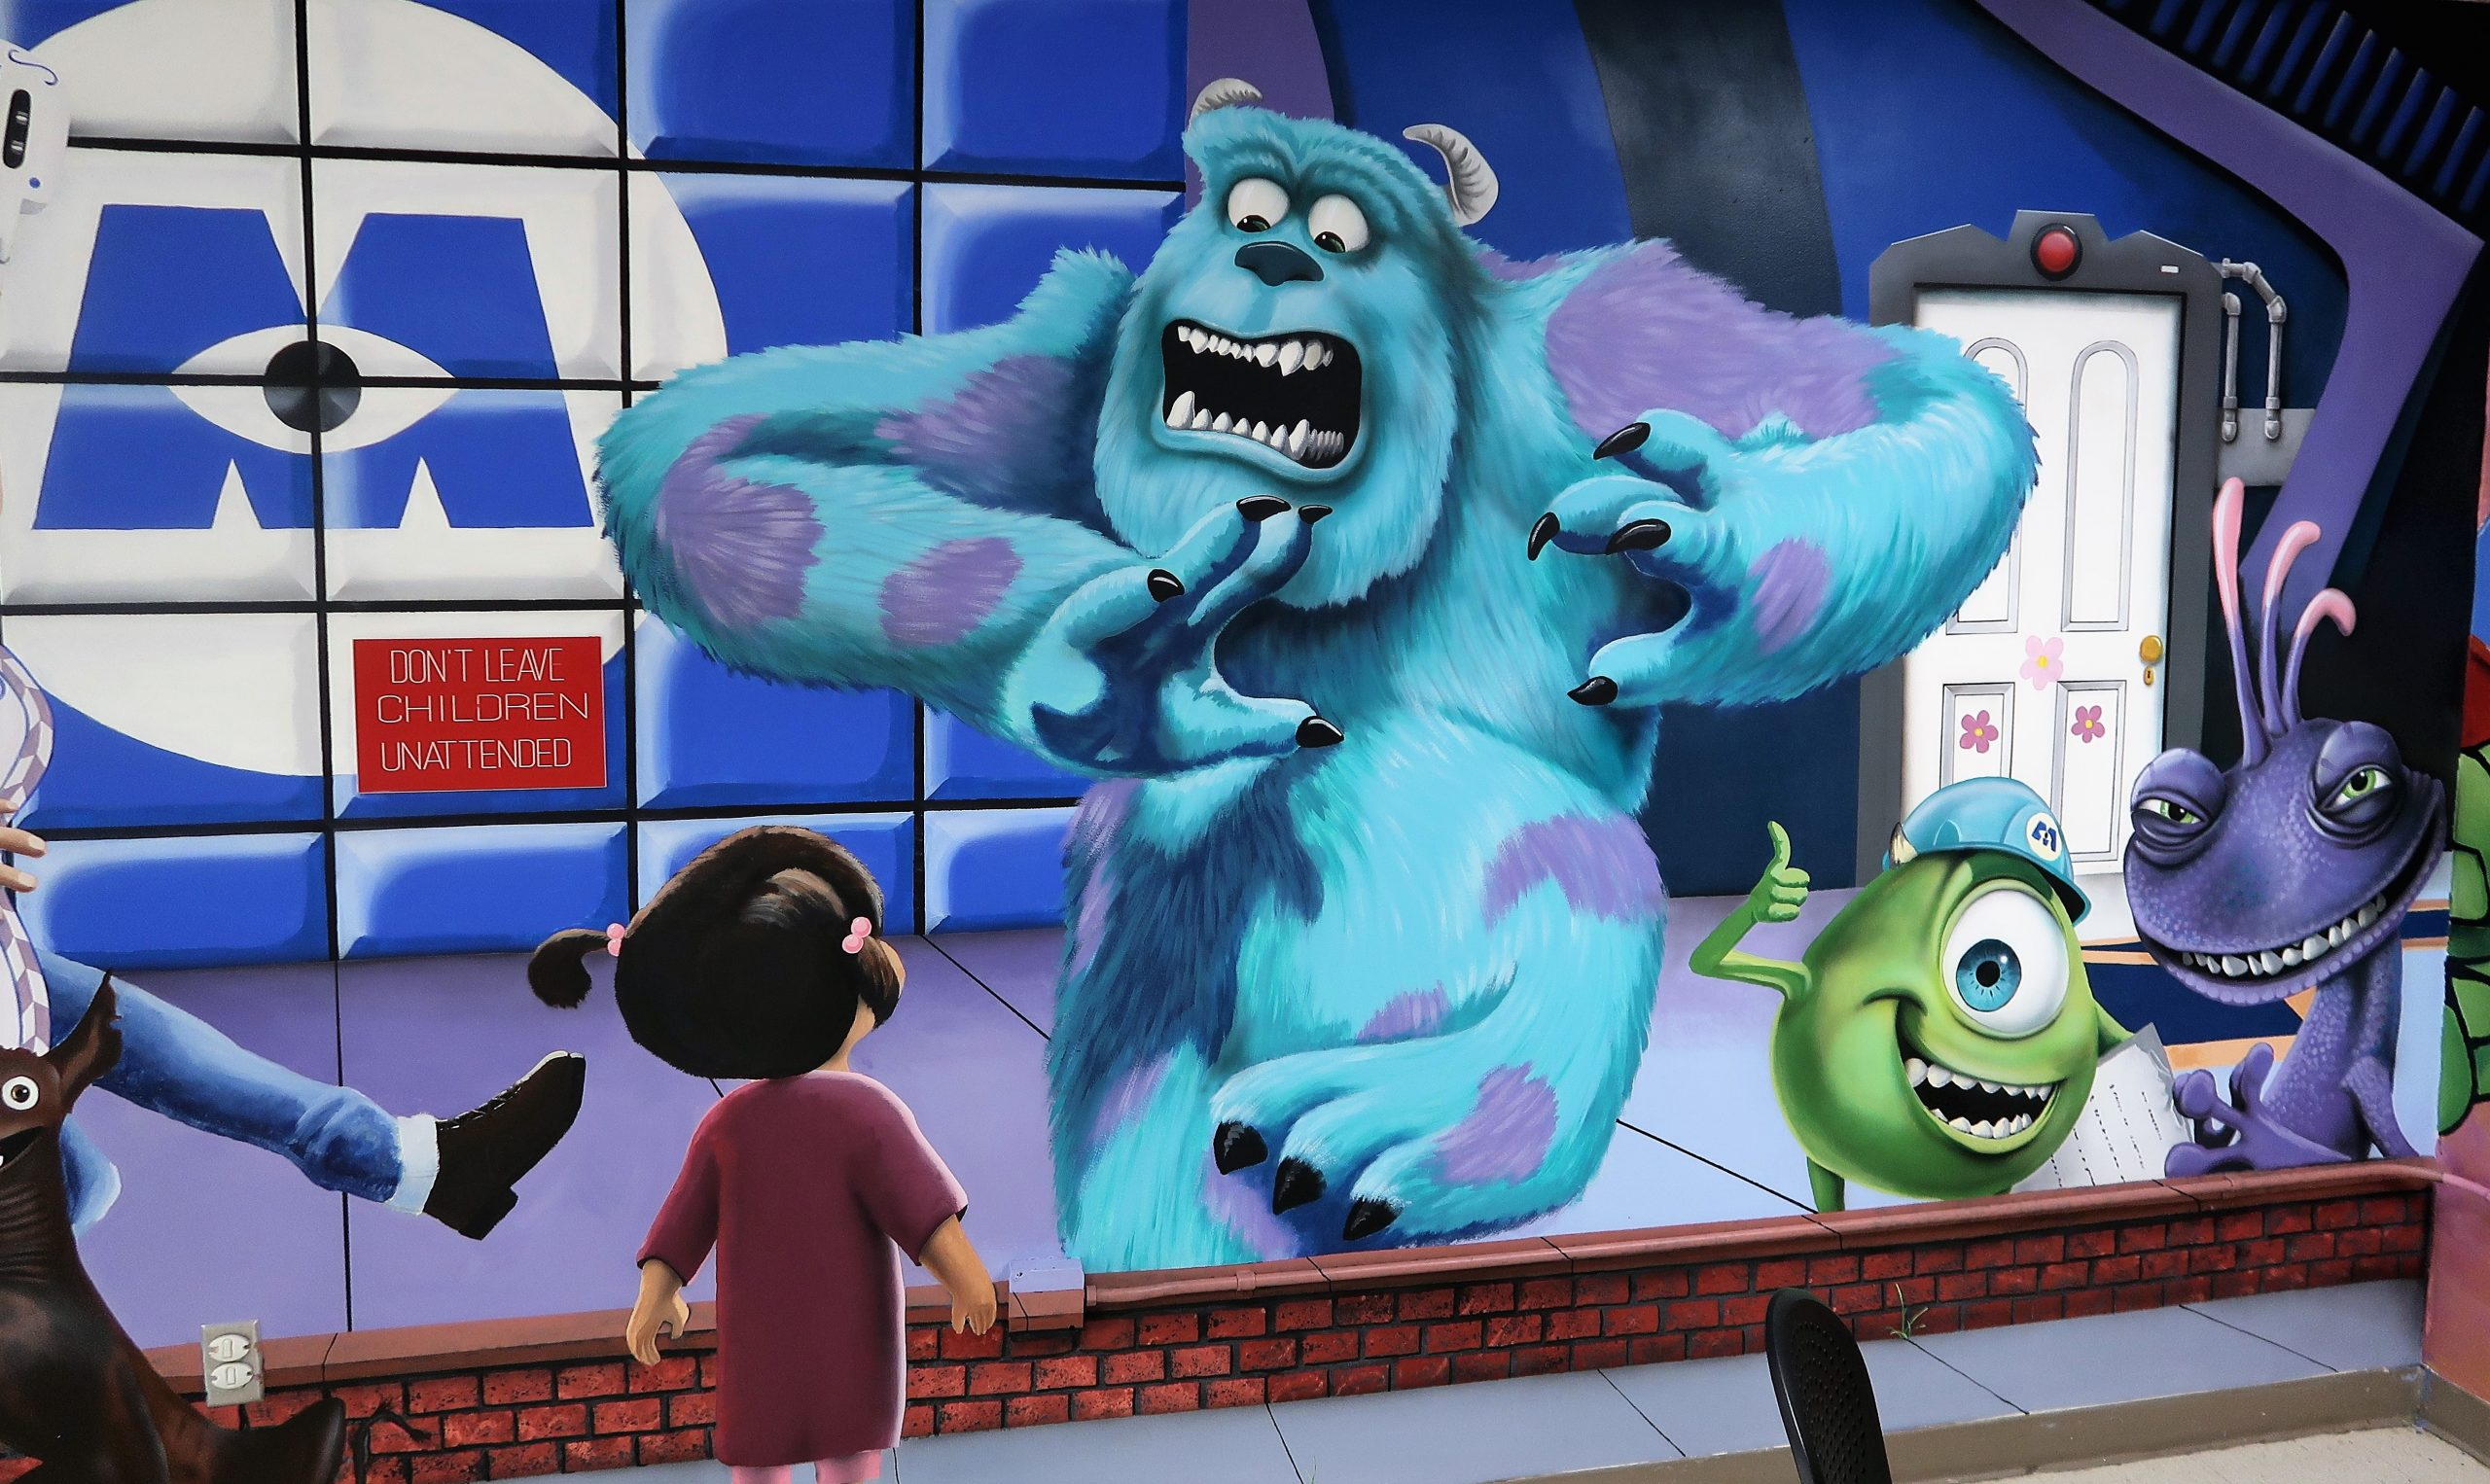 Avenal Prison visiting area featuring characters from Monsters Inc.